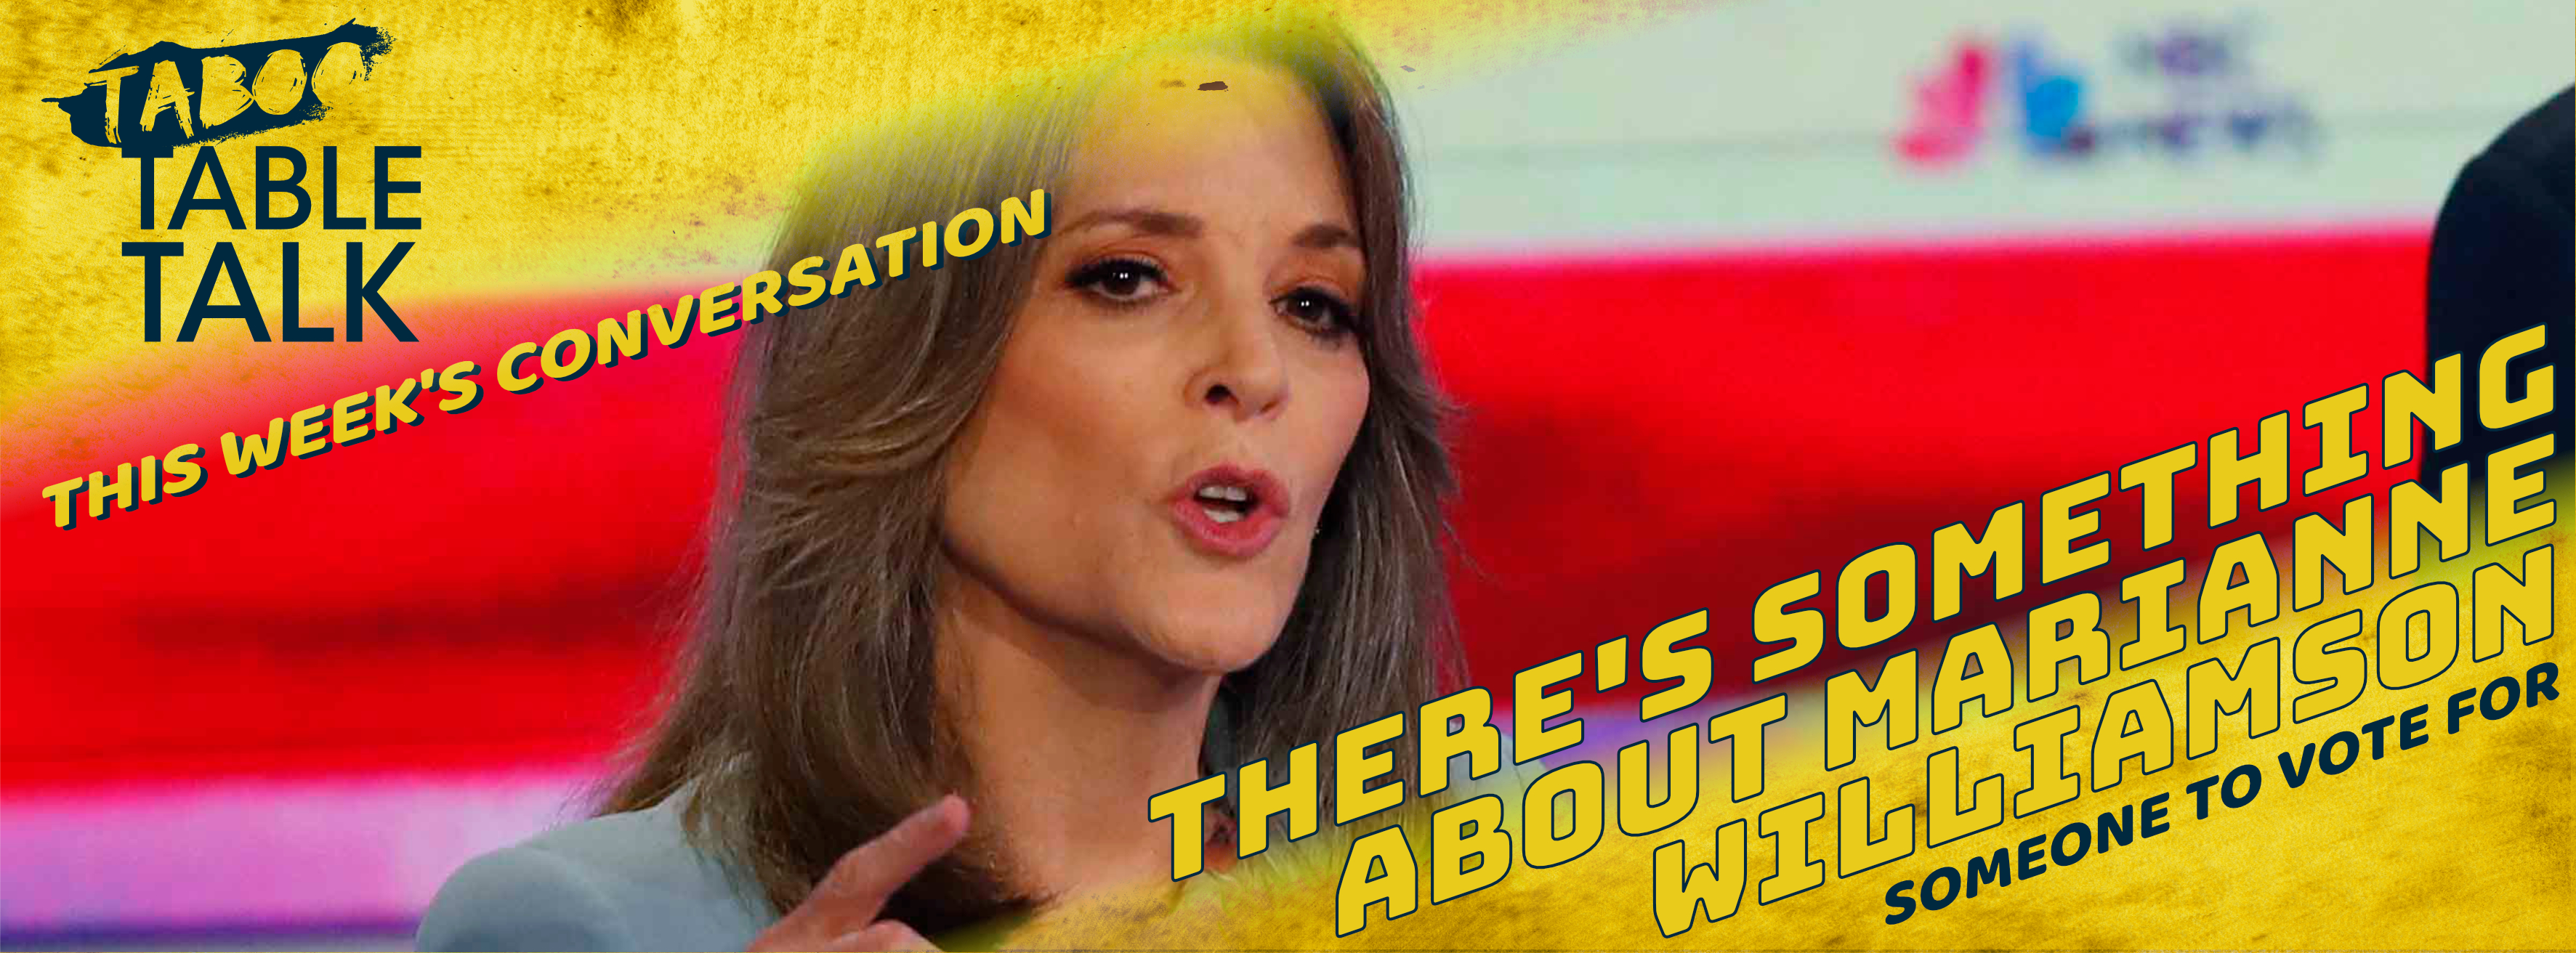 The Dispatch: There's Something About Marianne Williamson